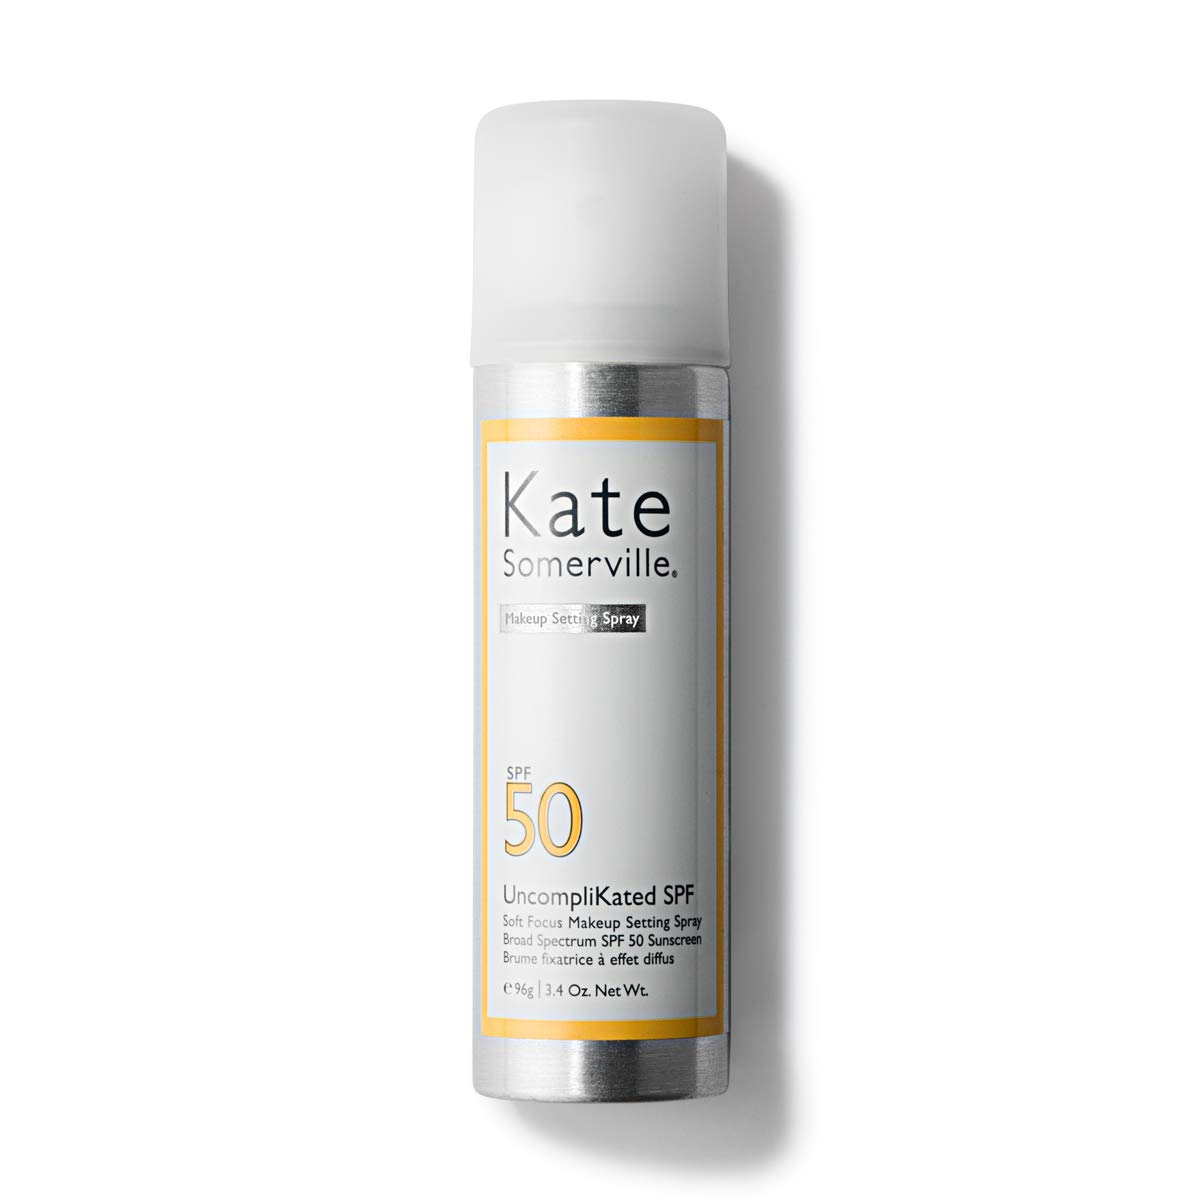 Kate Somerville UncompliKated SPF 50 Soft Focus Makeup Setting Spray - Setting Spray and Face Sunscreen (3.4 Fl. Oz.)